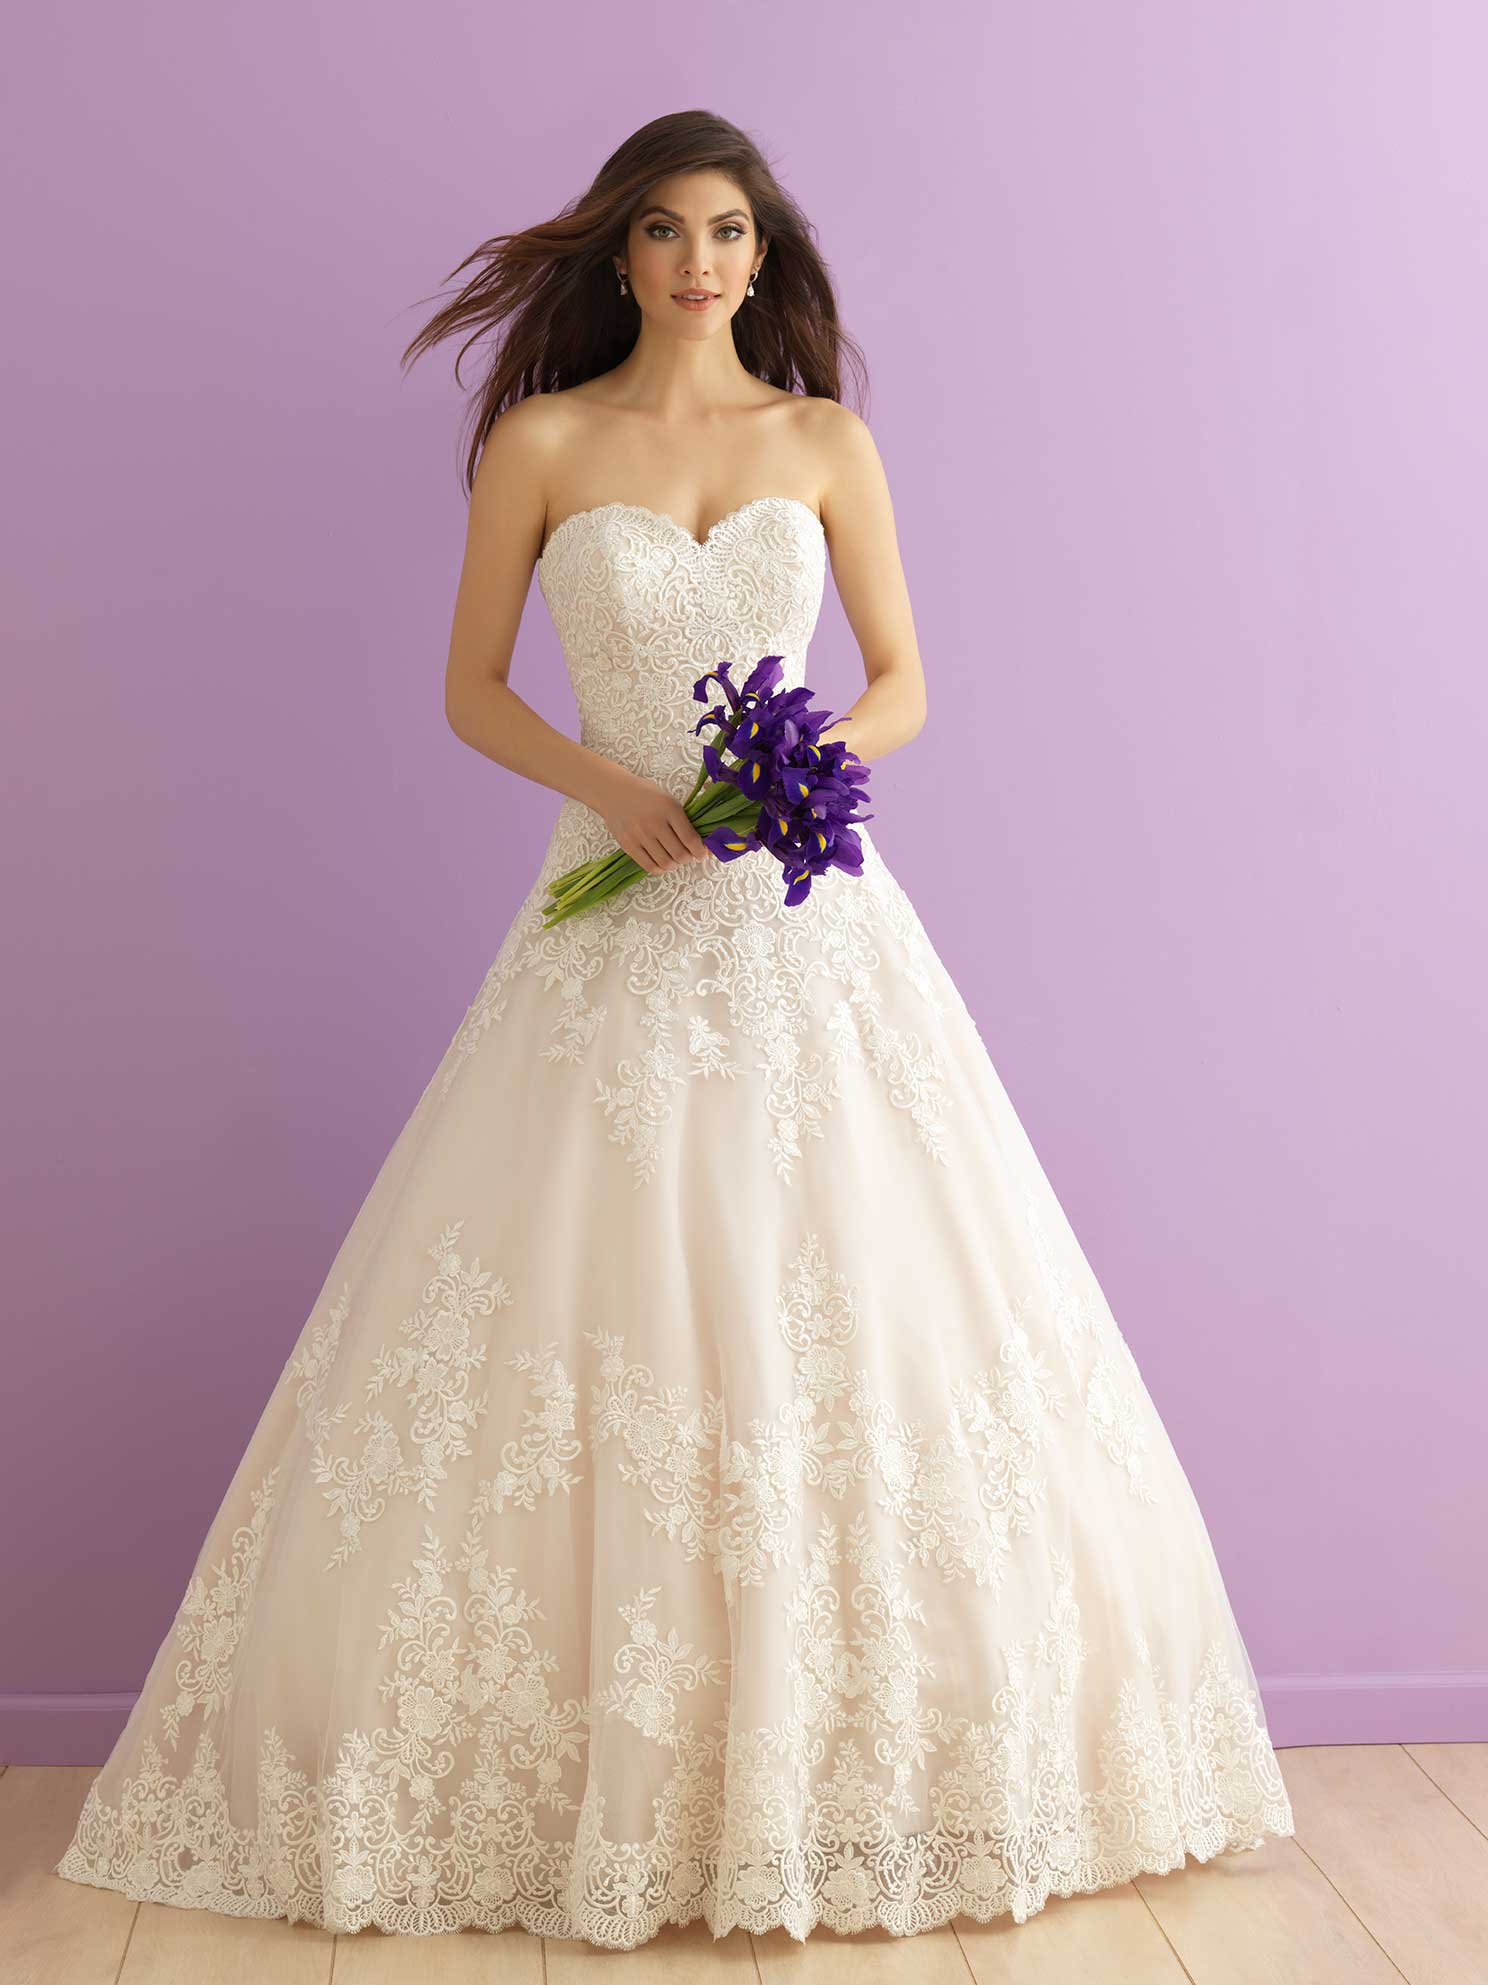 9711c442e12 Products Archive - Page 3 of 12 - Colins BridalColins Bridal